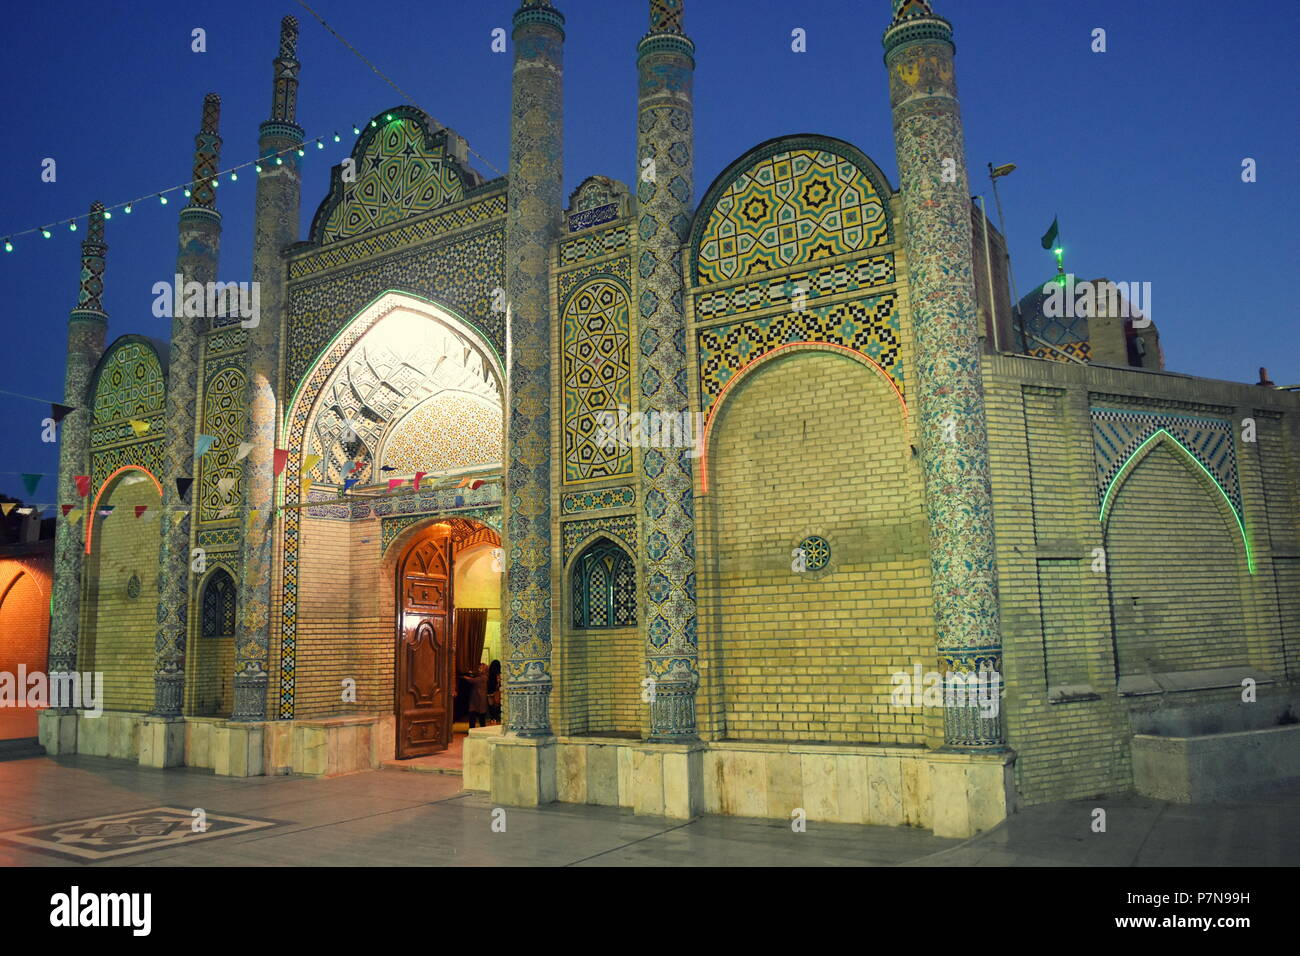 Beautiful architecture of old Shia Islamic shrine and mosque with typical Middle Eastern and Persian architecture at dusk in Qazvin, Iran - Stock Image